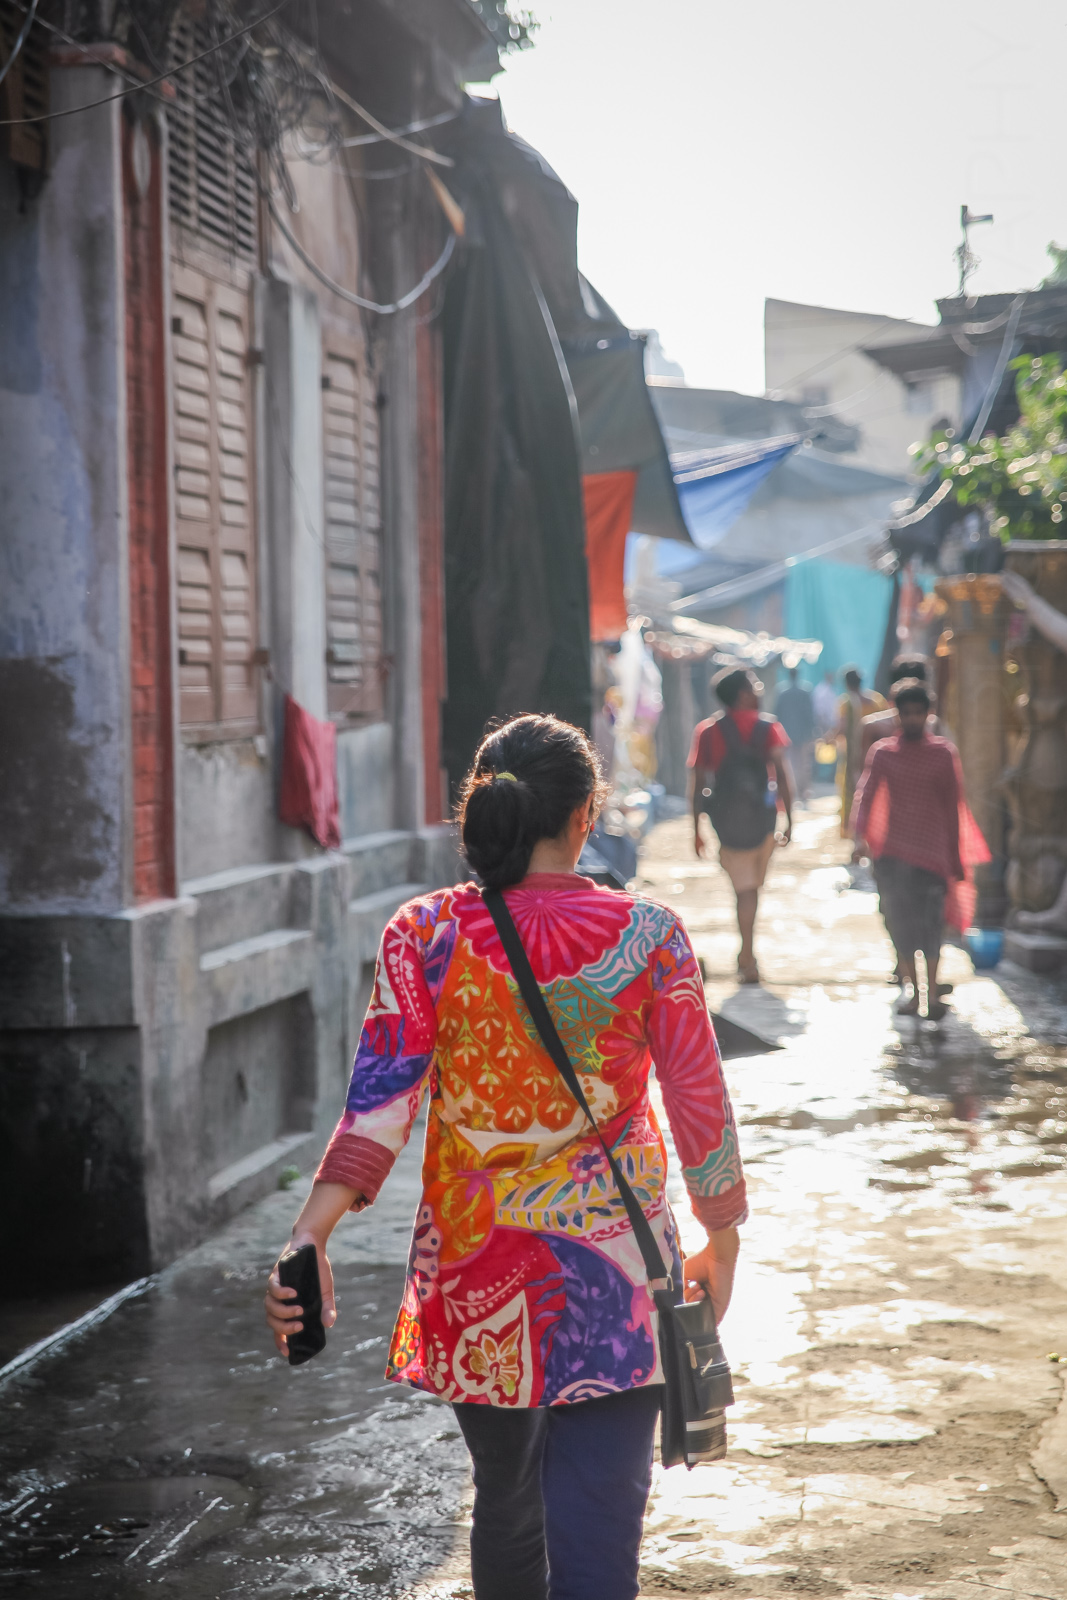 Priya walks through the alleys of Kumortuli